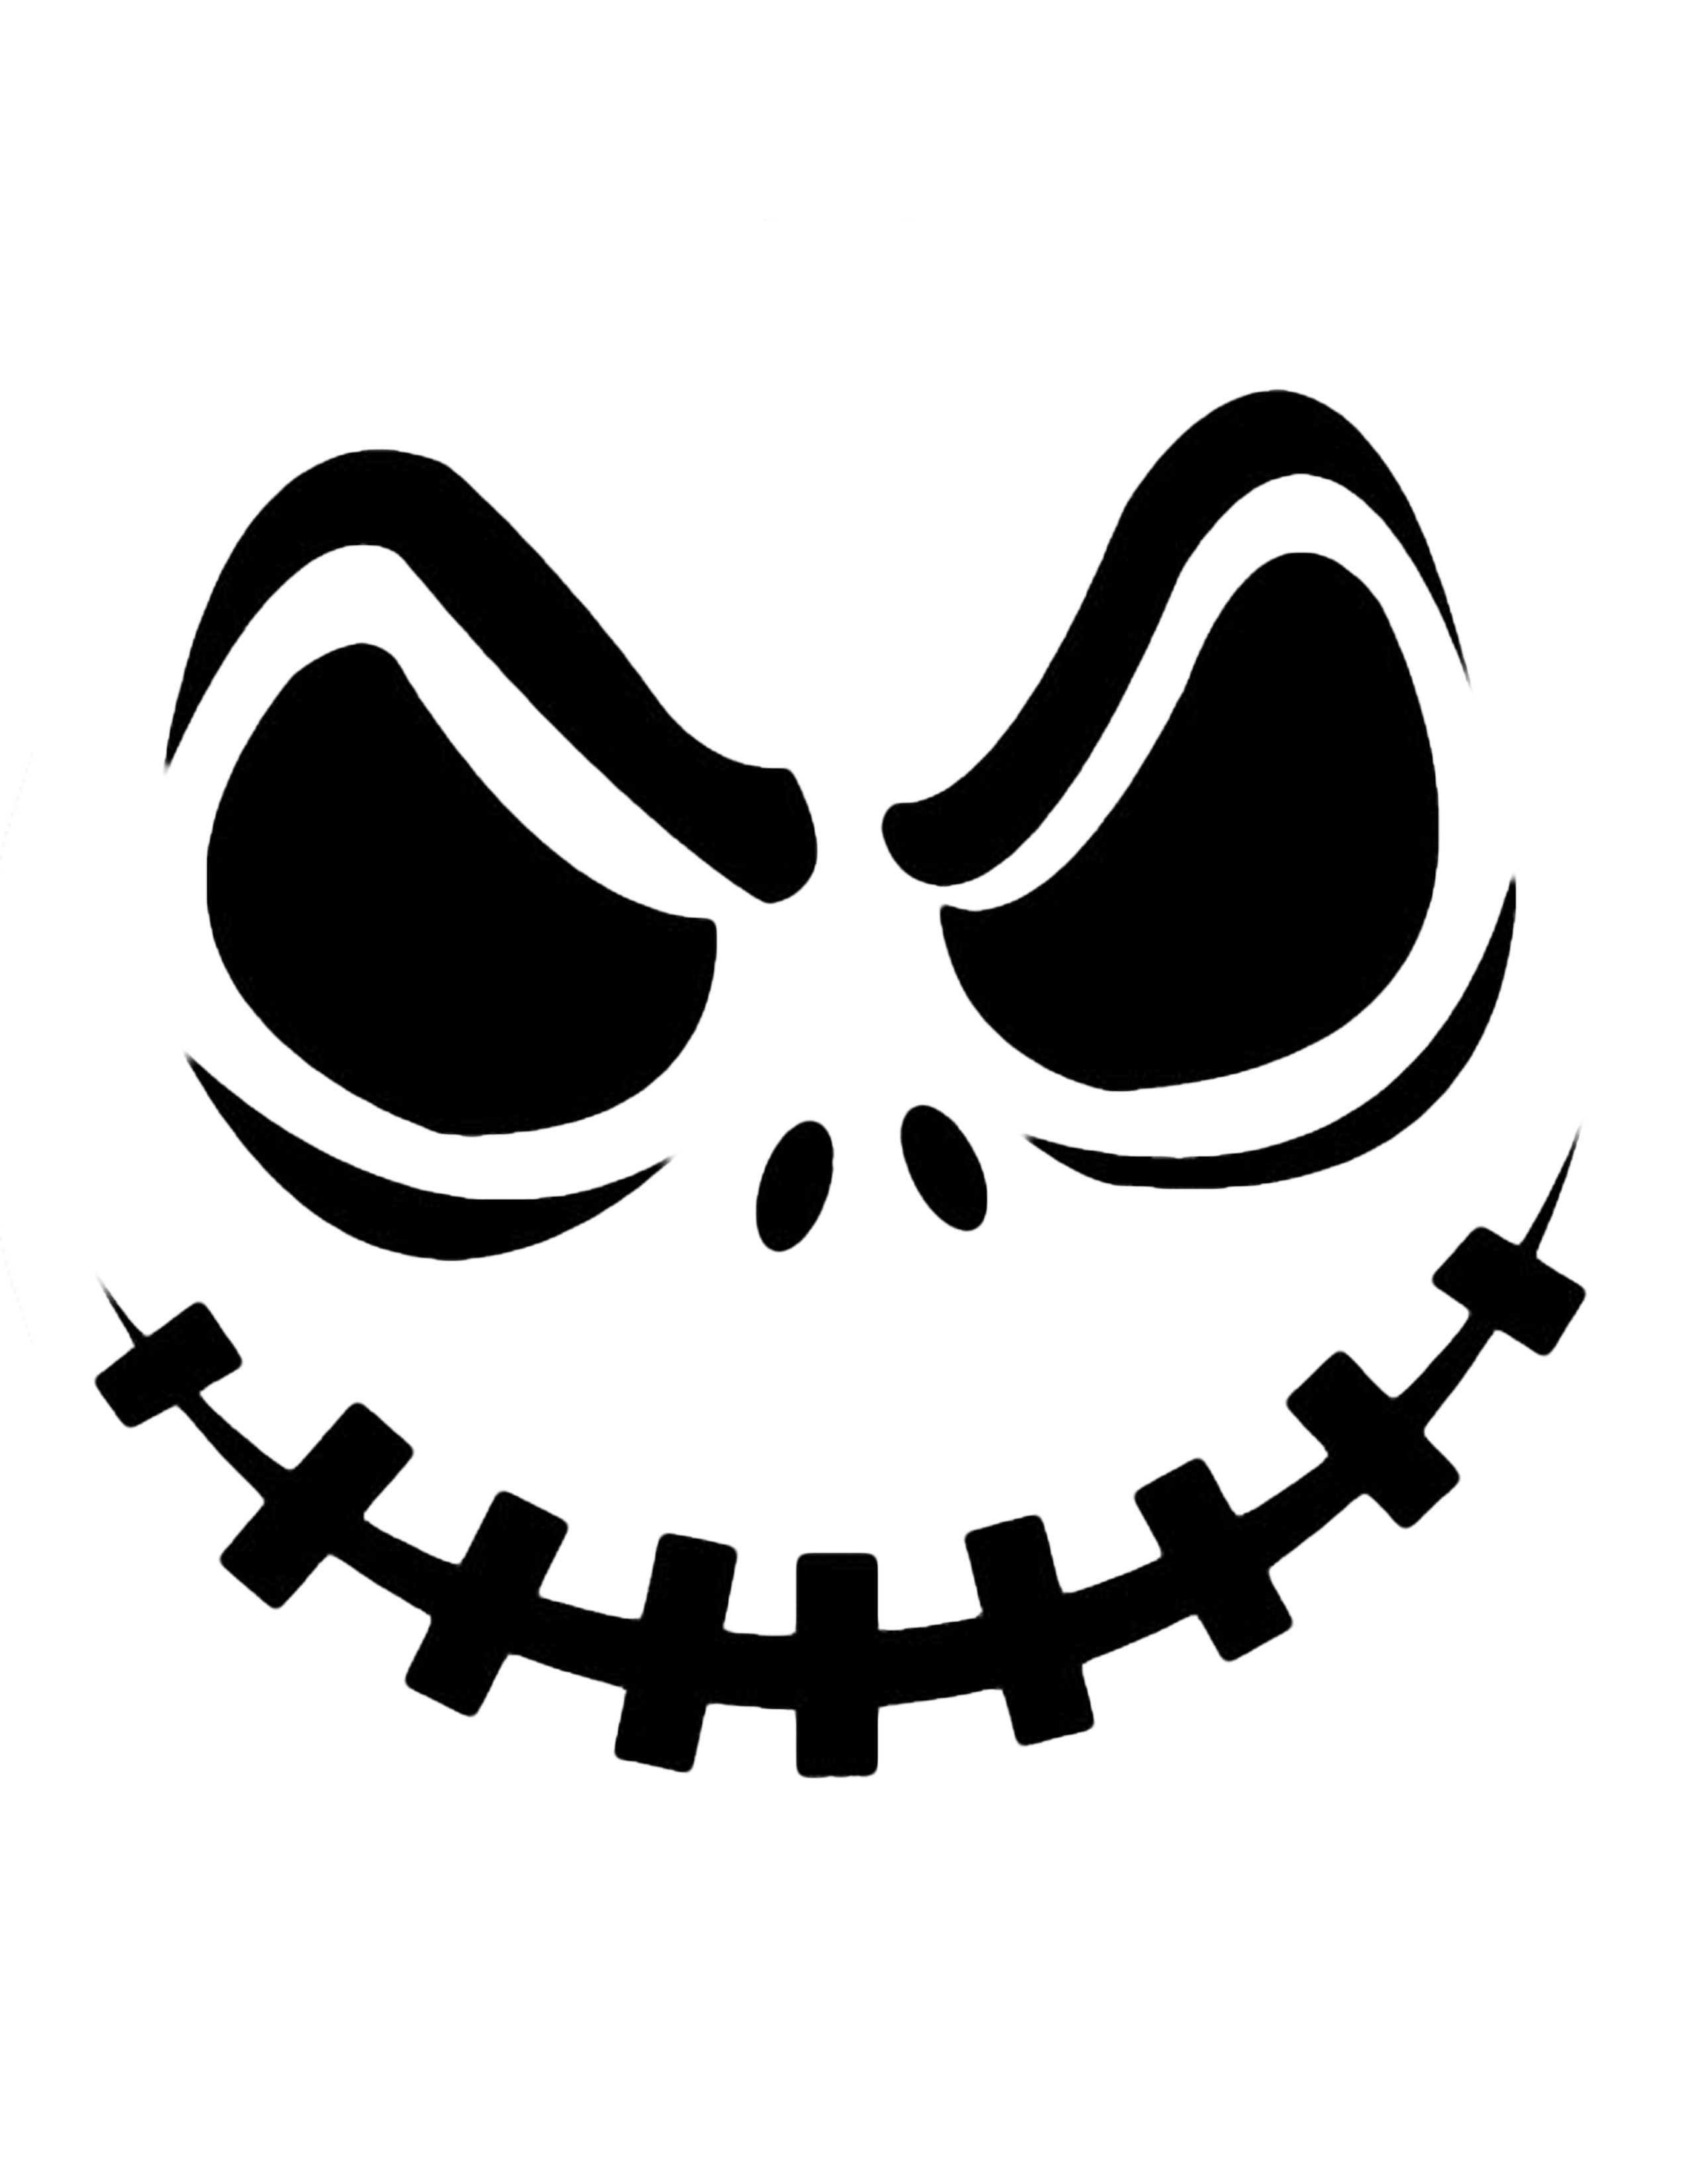 Scary Halloween Clipart Black .-Scary Halloween Clipart Black .-10